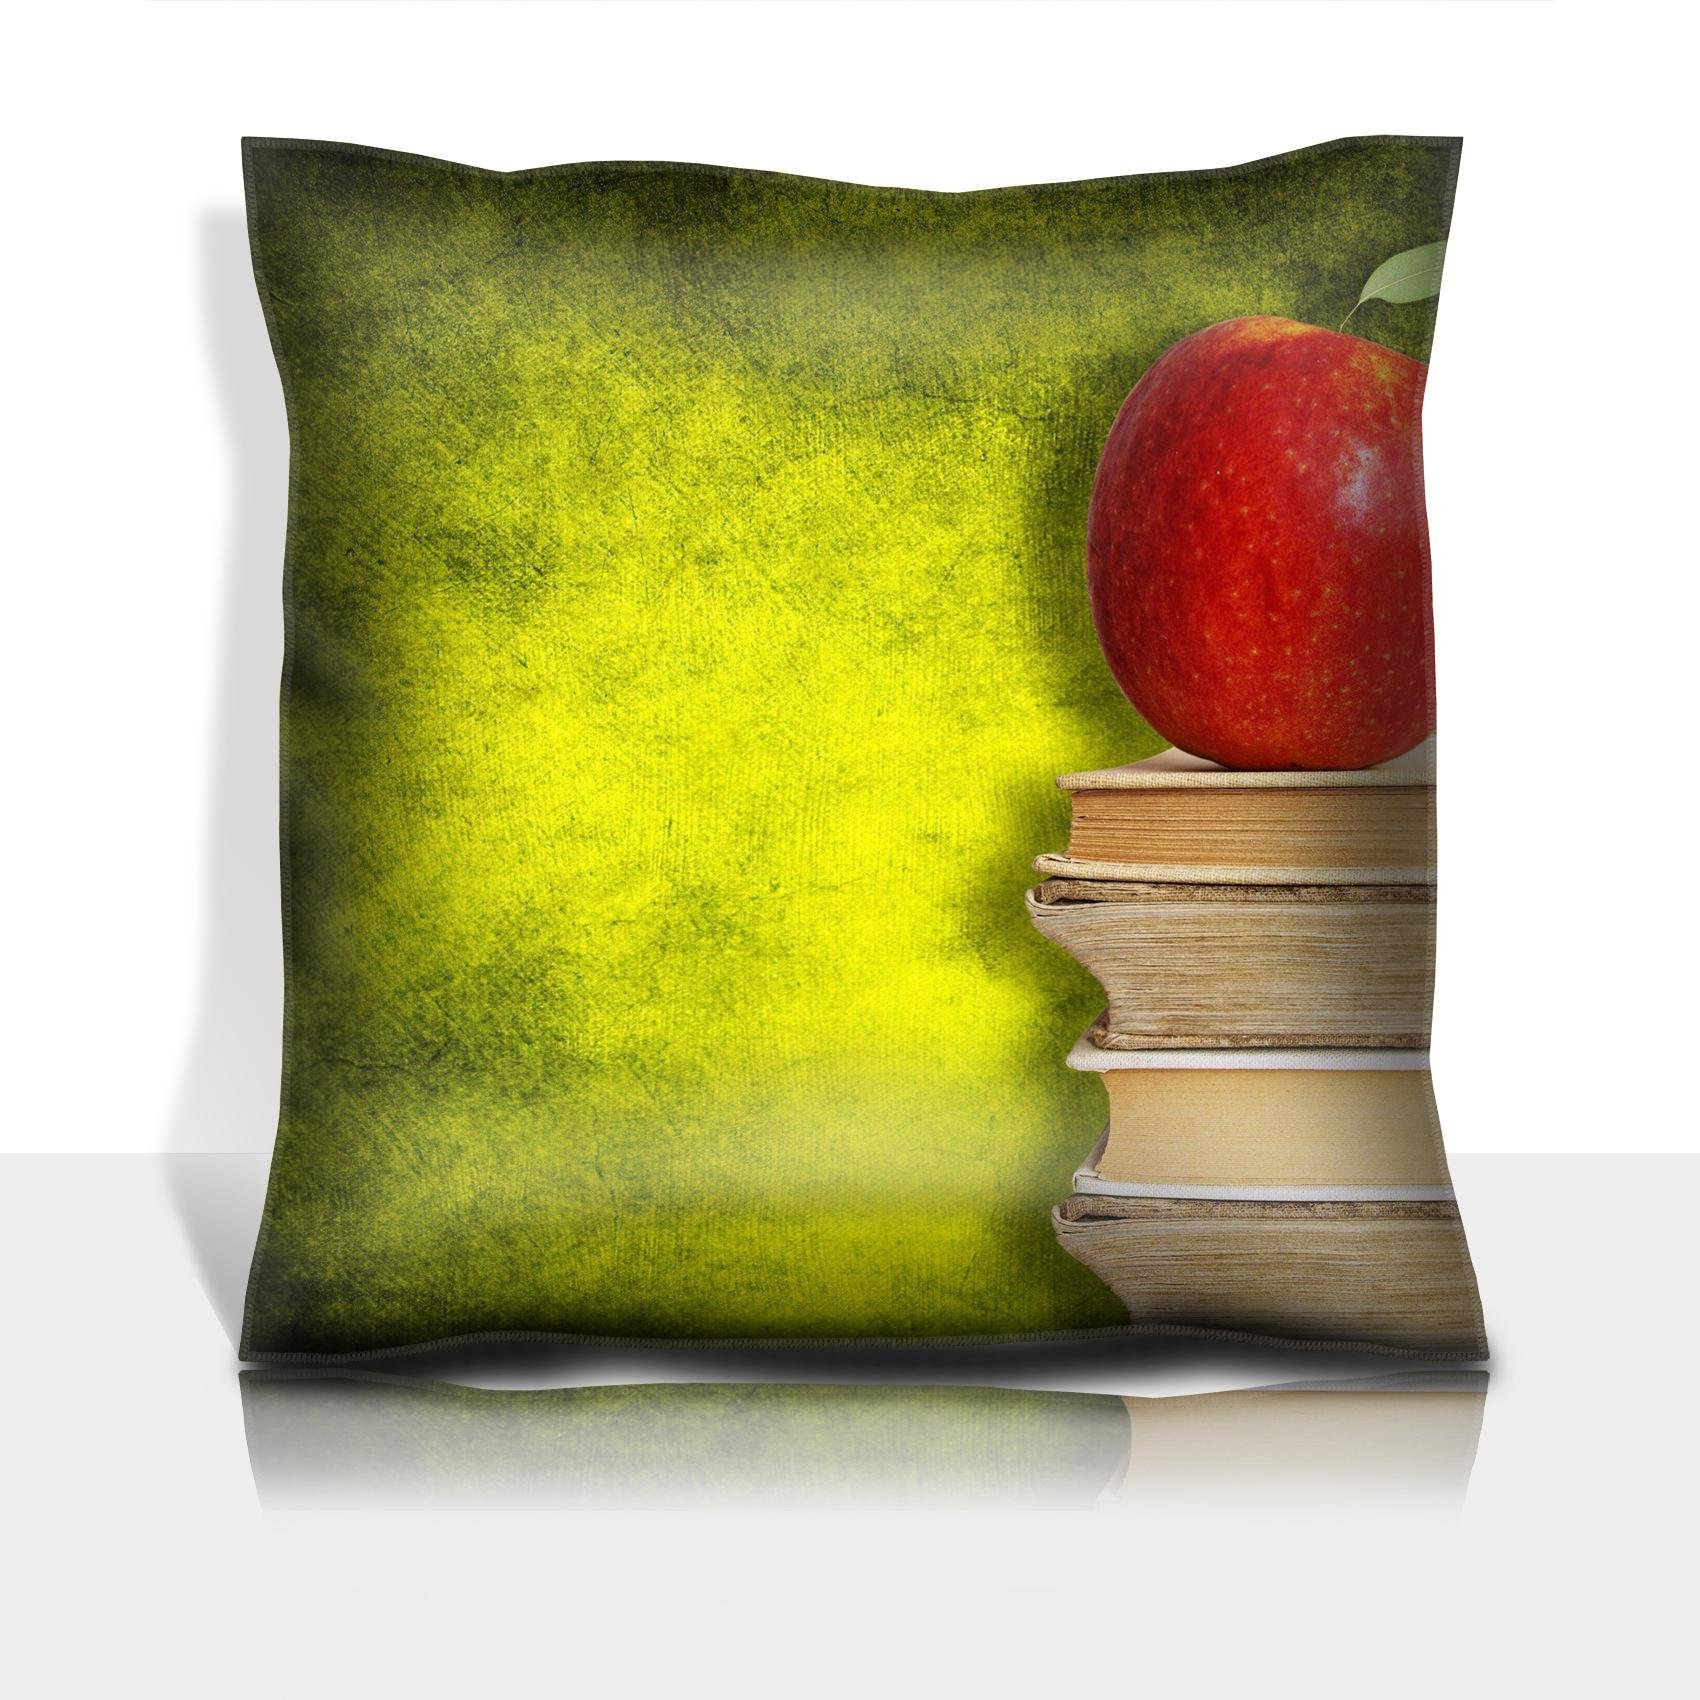 Liili Throw Pillowcase Polyester Satin Comfortable Decorative Soft Pillow Covers Protector sofa 16x16, 1pack back to school concept red apple on stack of books against painted wall Photo 5316